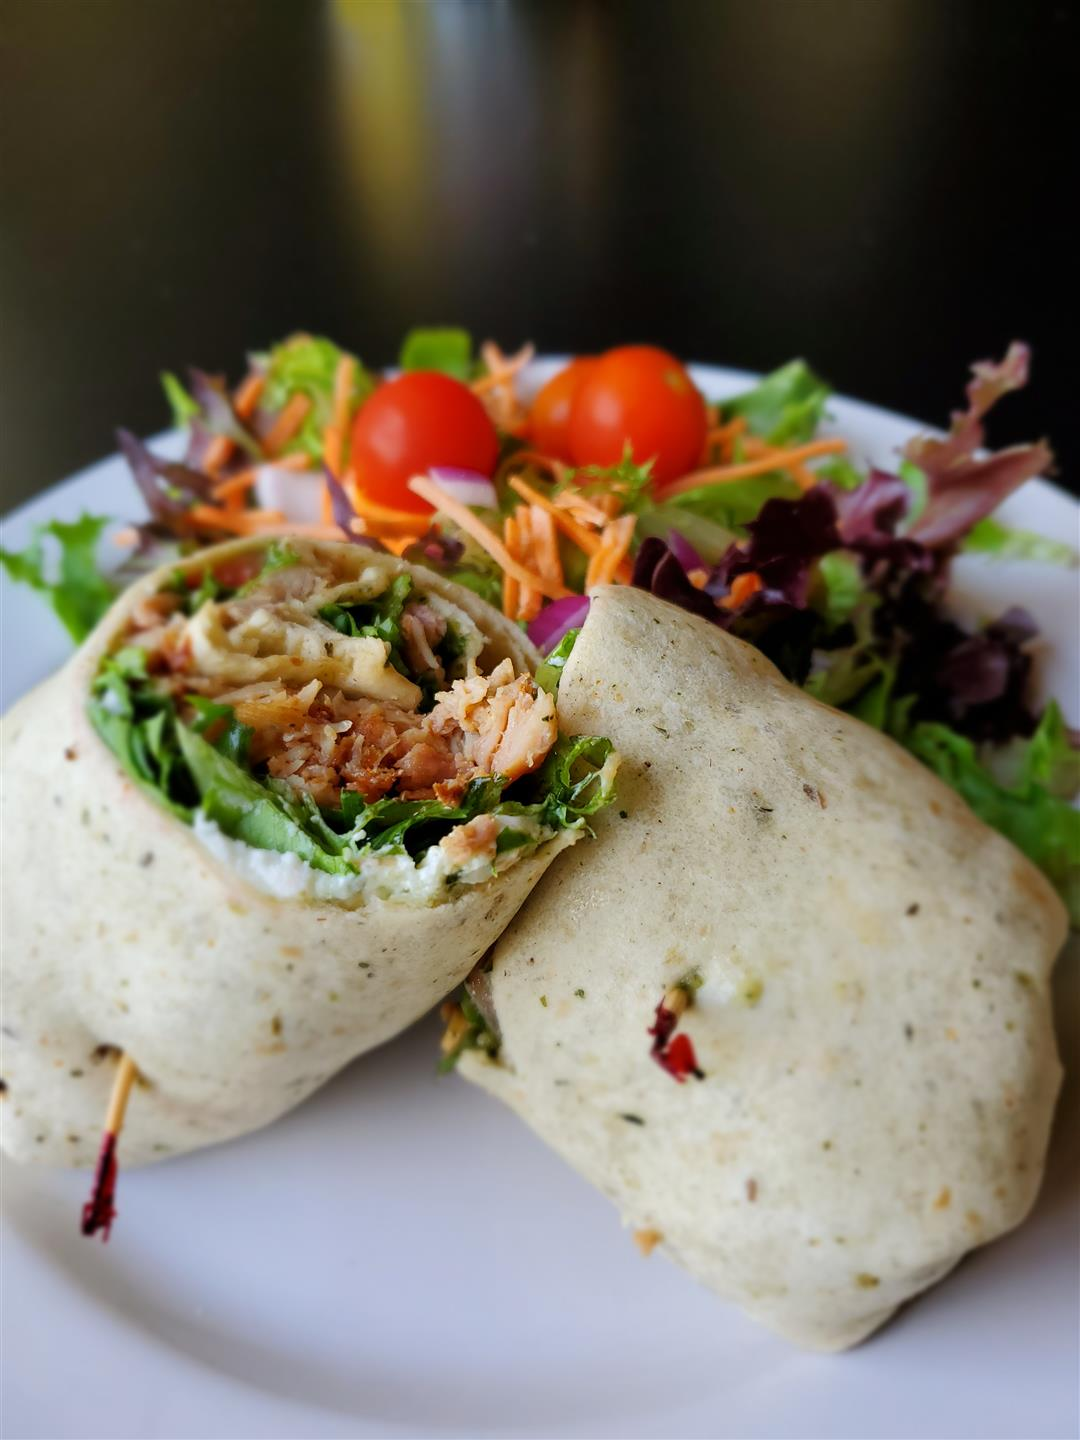 chicken wrap with side salad